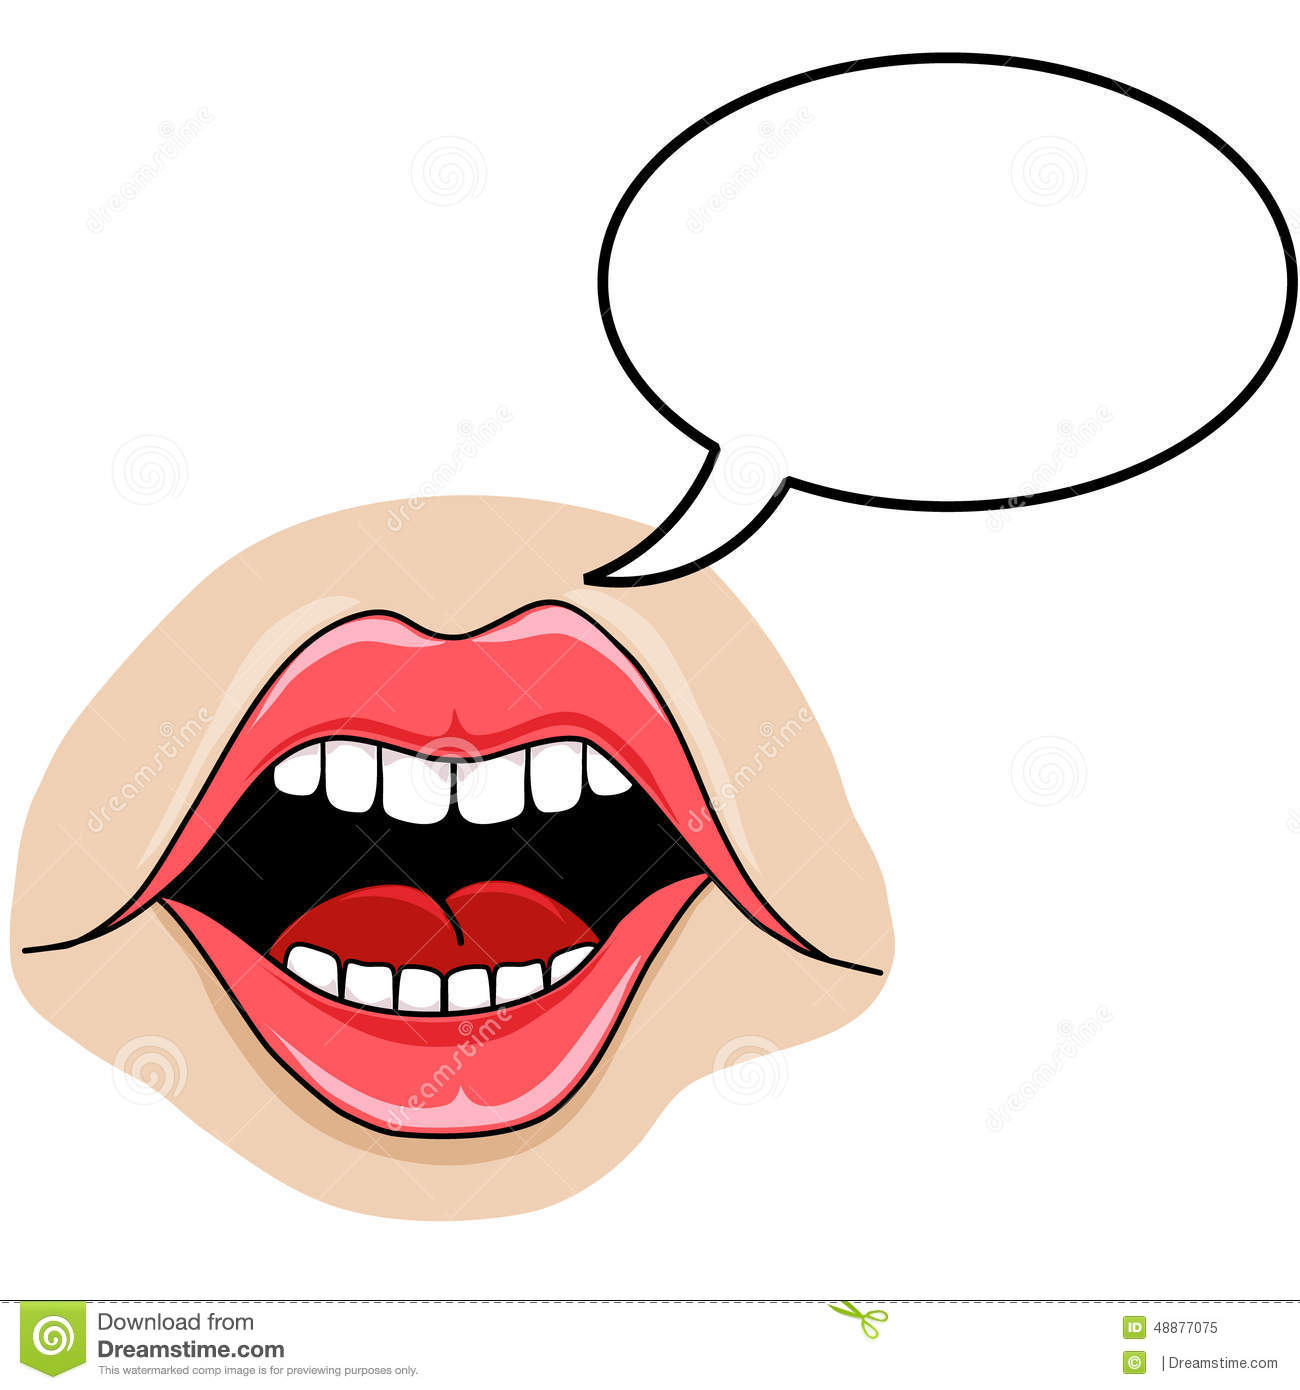 Speaking Mouth Stock Illustrations.